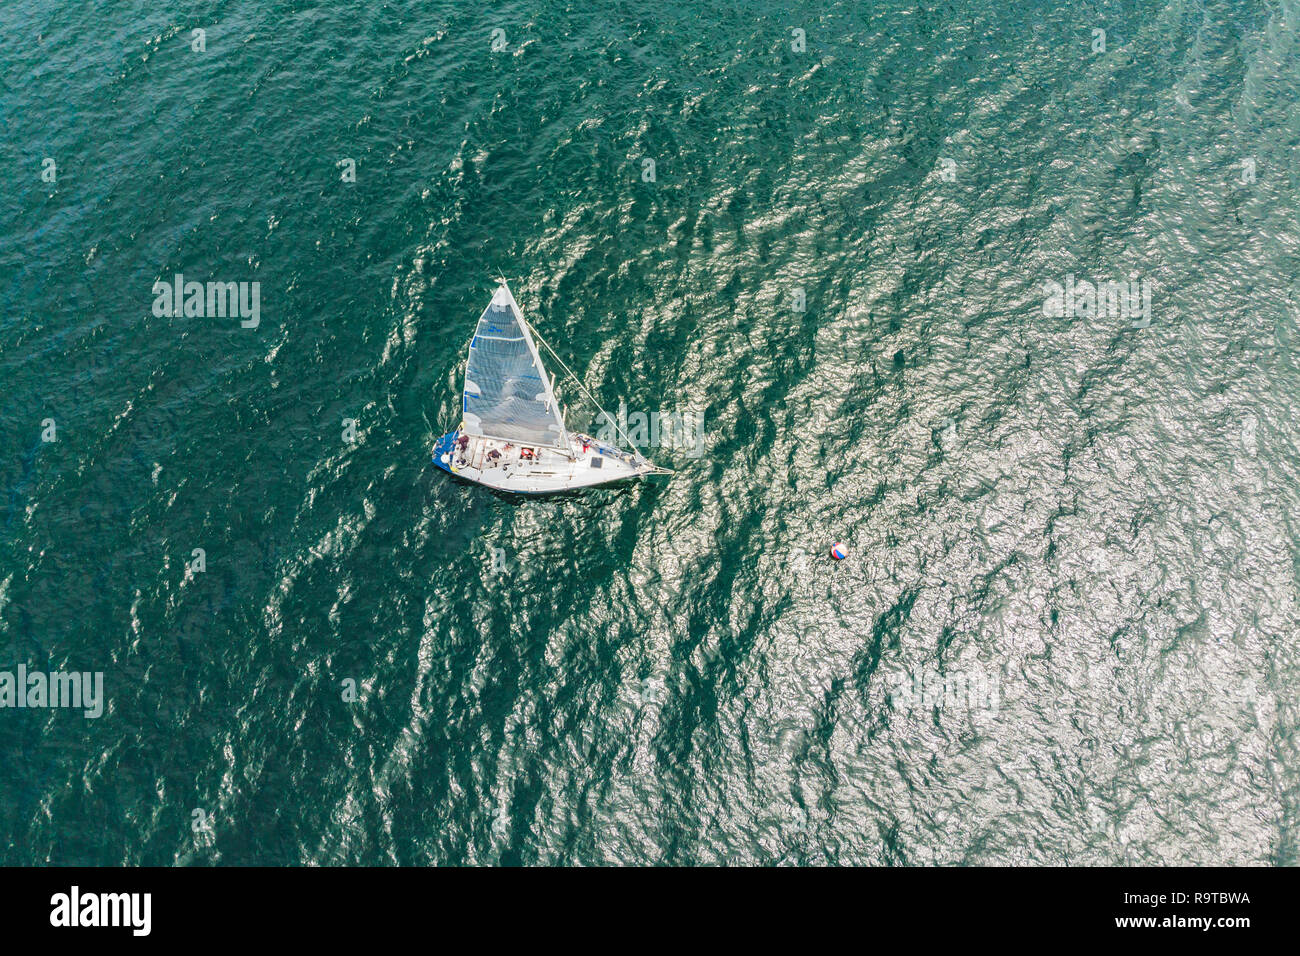 Sailing yachts regatta. Series yachts and ships. photo from drone - Stock Image